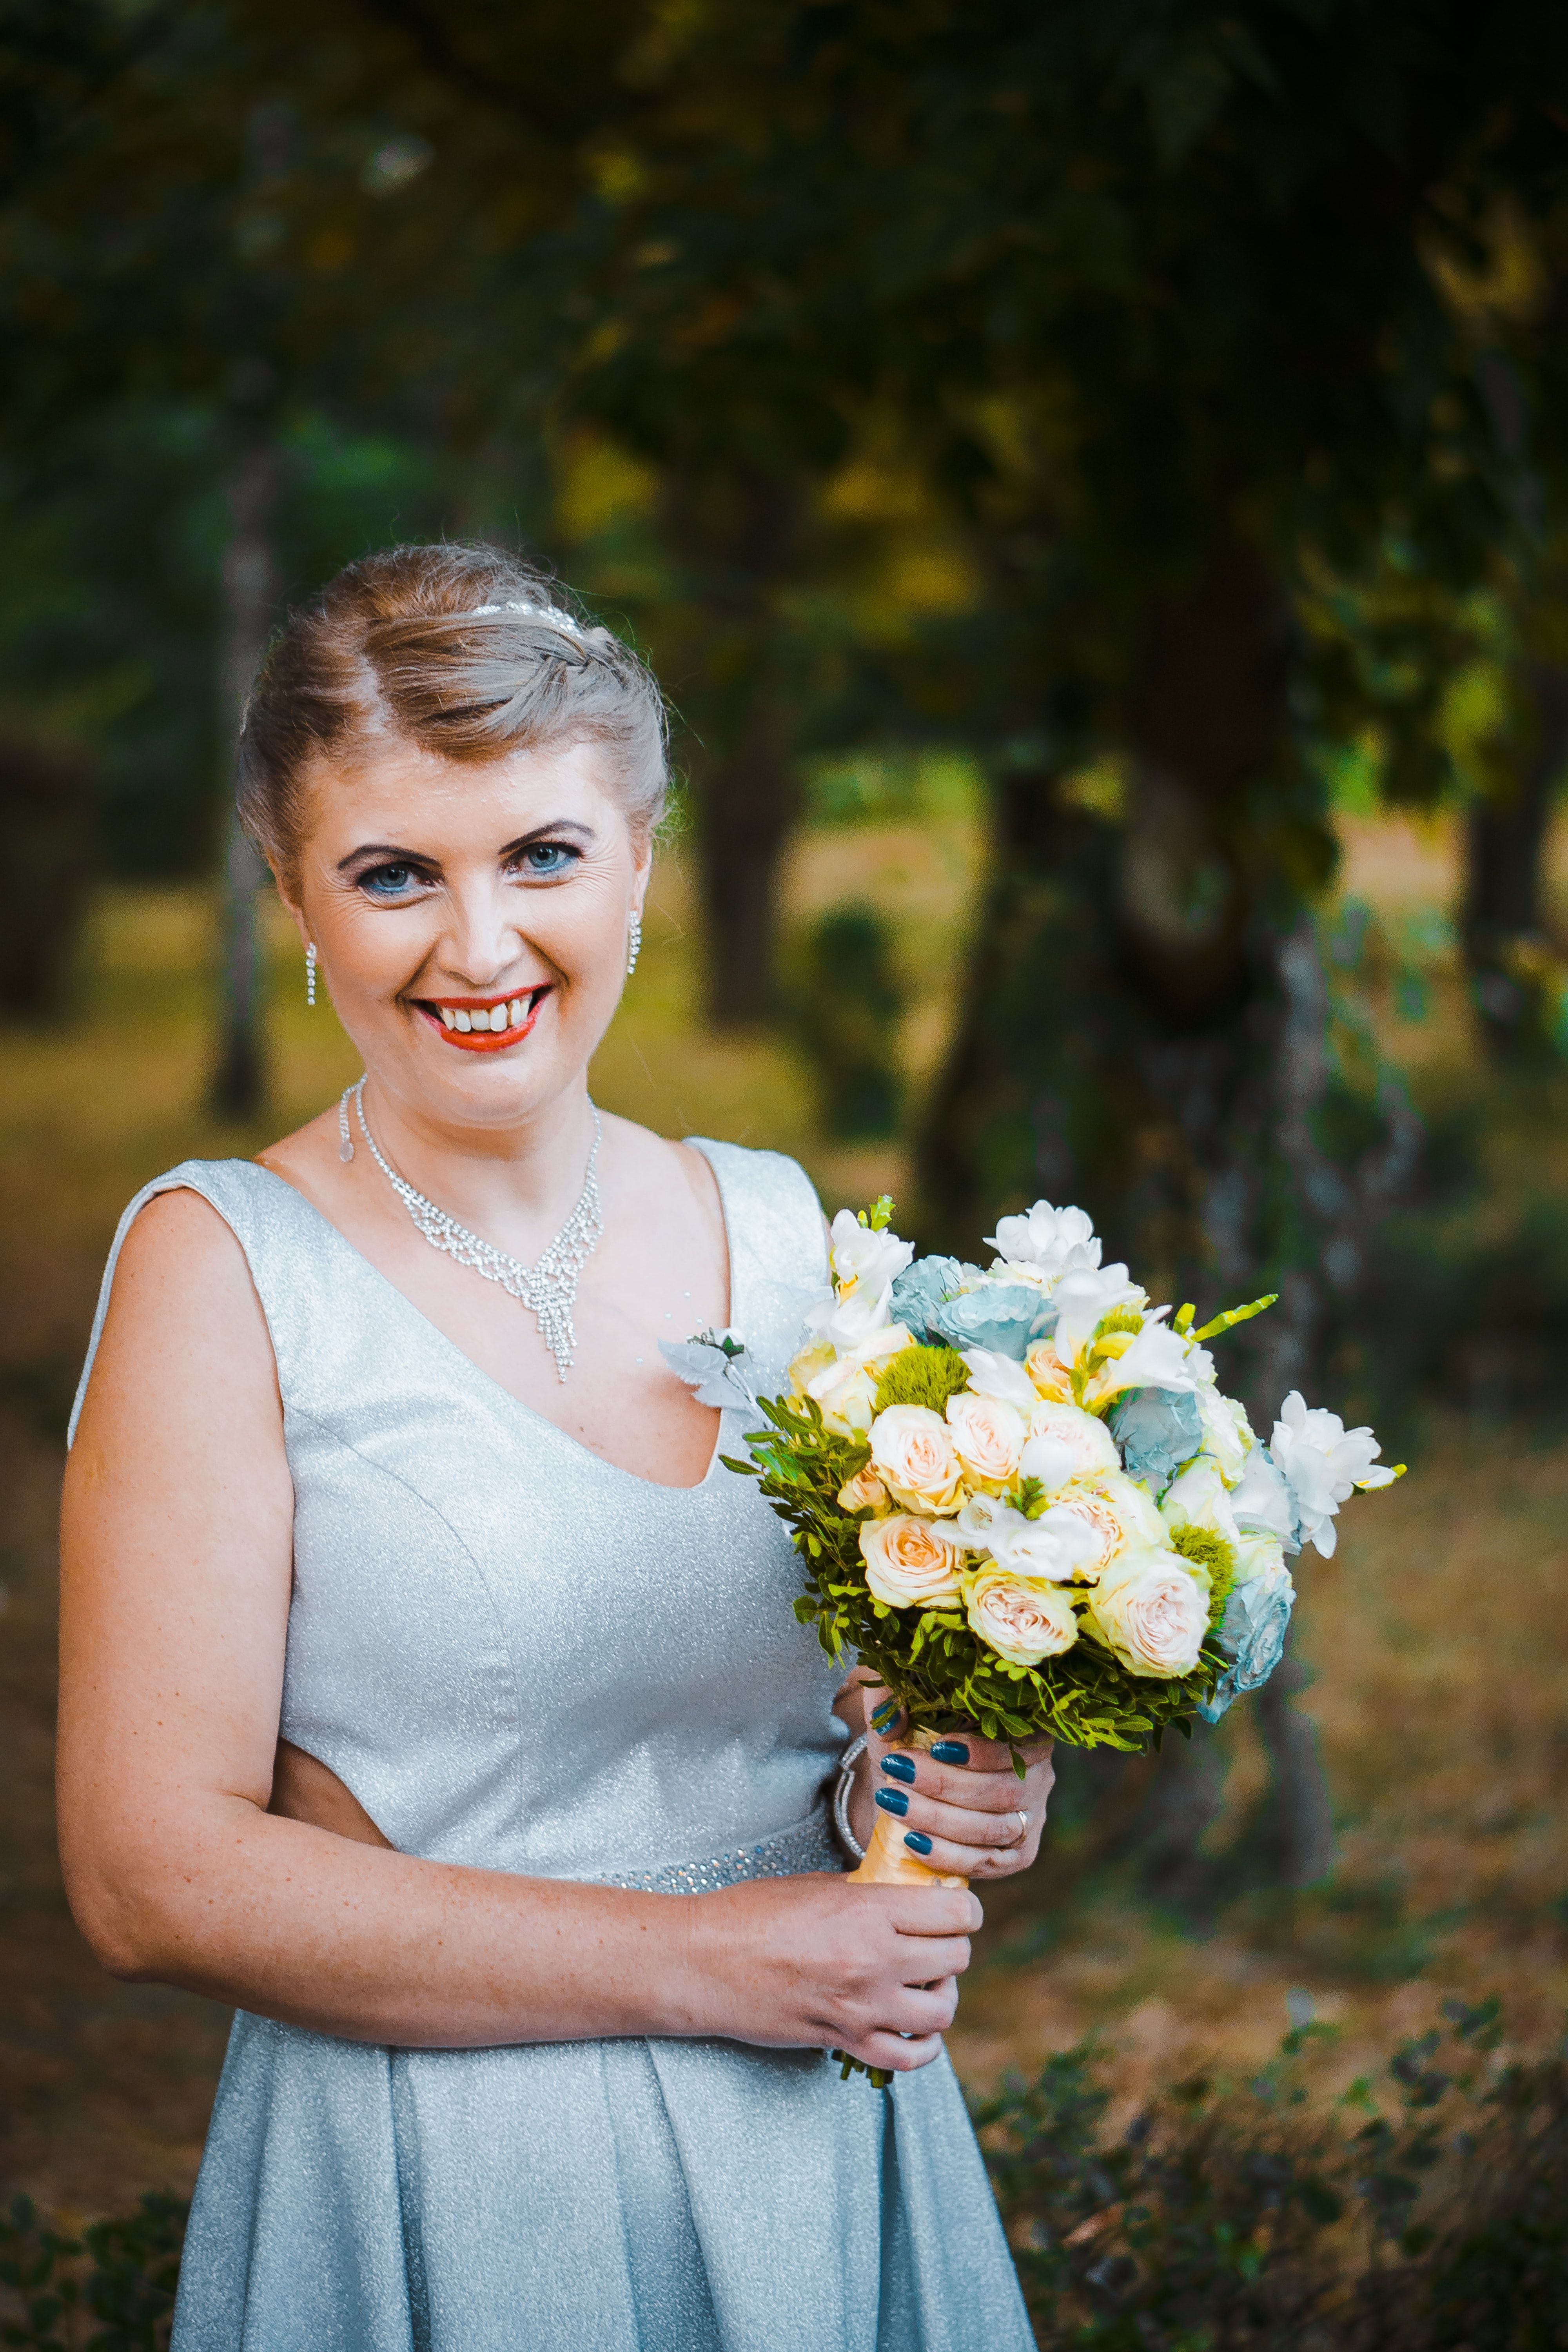 shallow focus photo of woman in sleeveless dress holding flowers